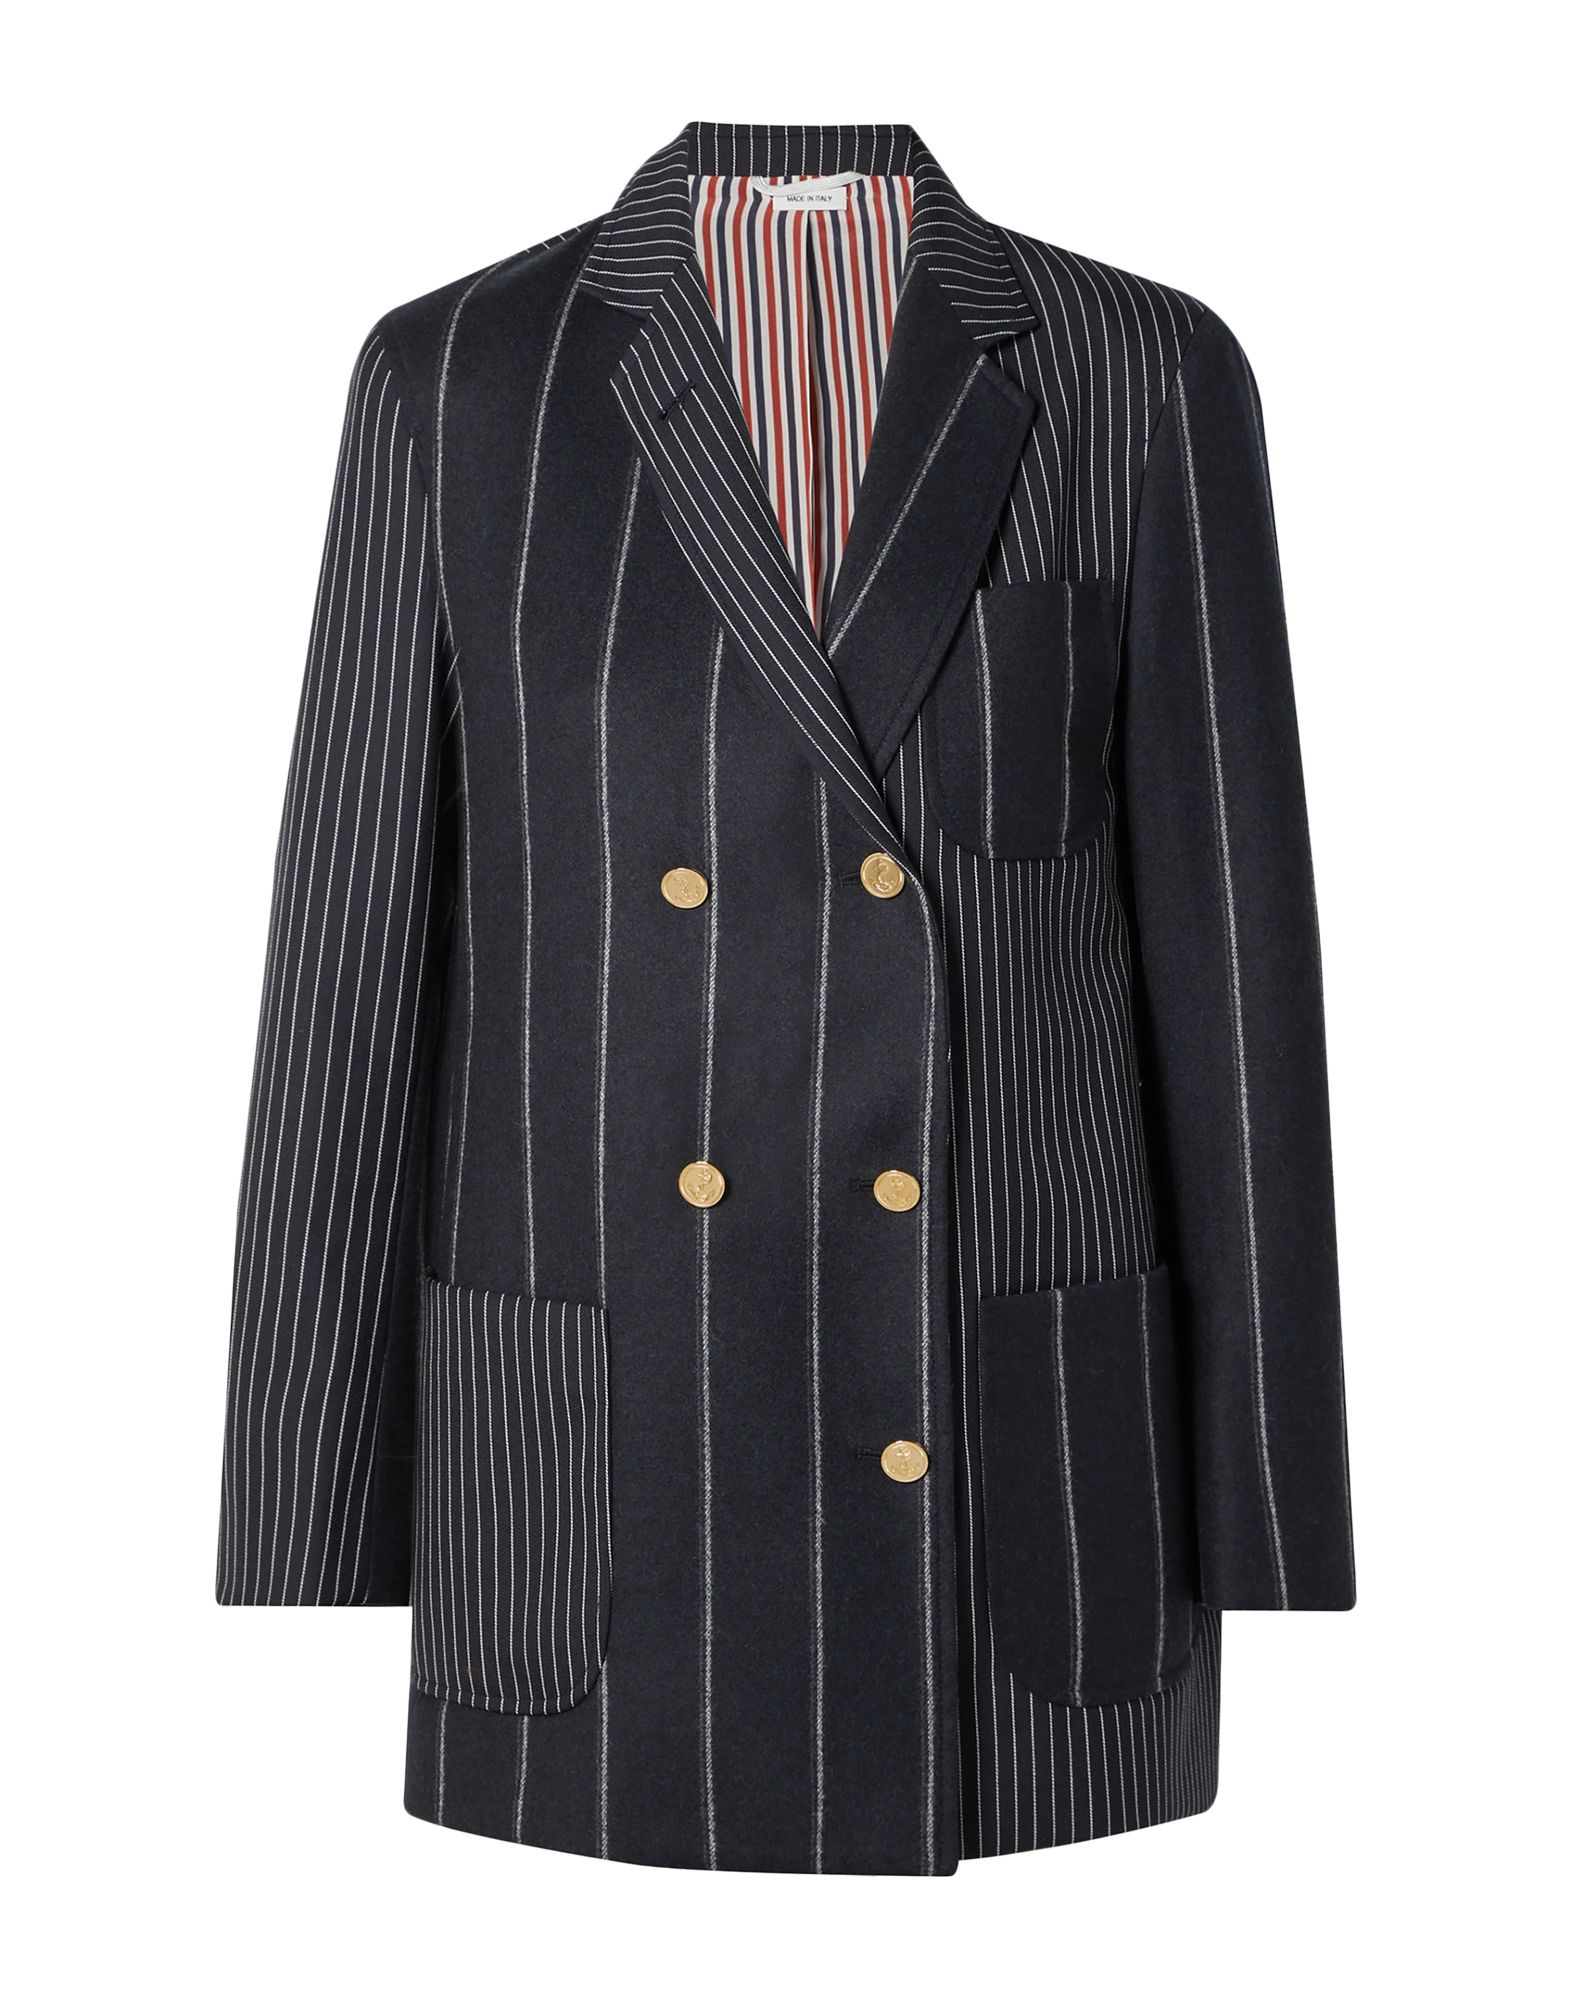 THOM BROWNE Suit jackets. flannel, no appliqués, pinstriped, lapel collar, long sleeves, double-breasted, multipockets, button closing, single chest pocket, fully lined, back split, button closing. 100% Wool